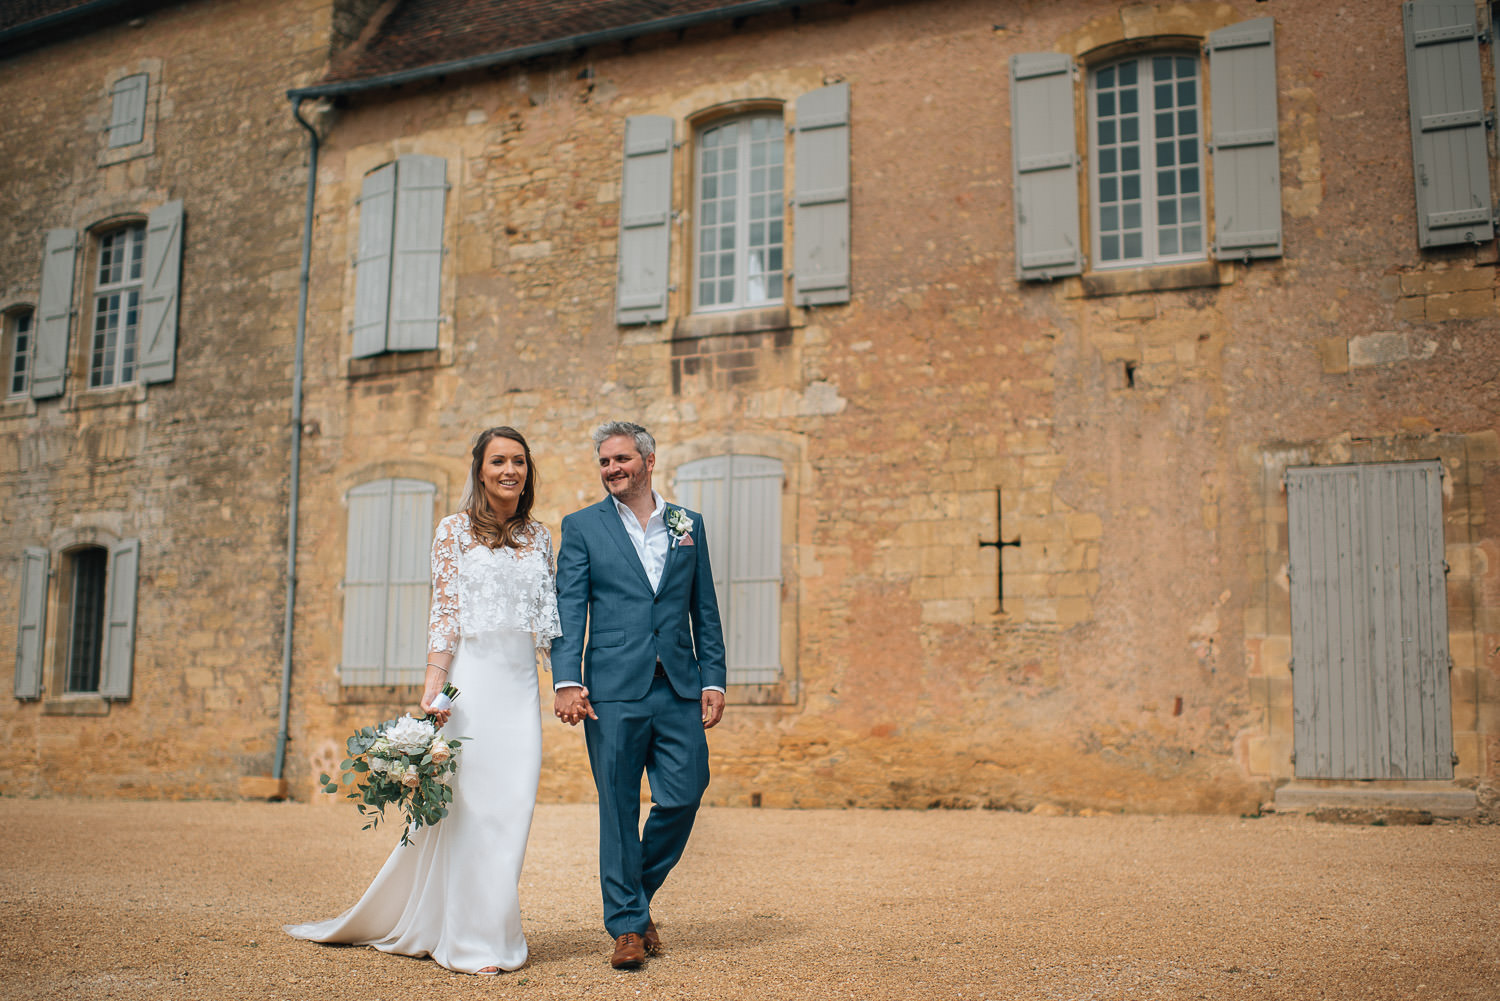 Couples portraits with bride in Rime Arodaky wedding dress in chateau de la bourlie wedding by destination wedding photographer the shannons photography